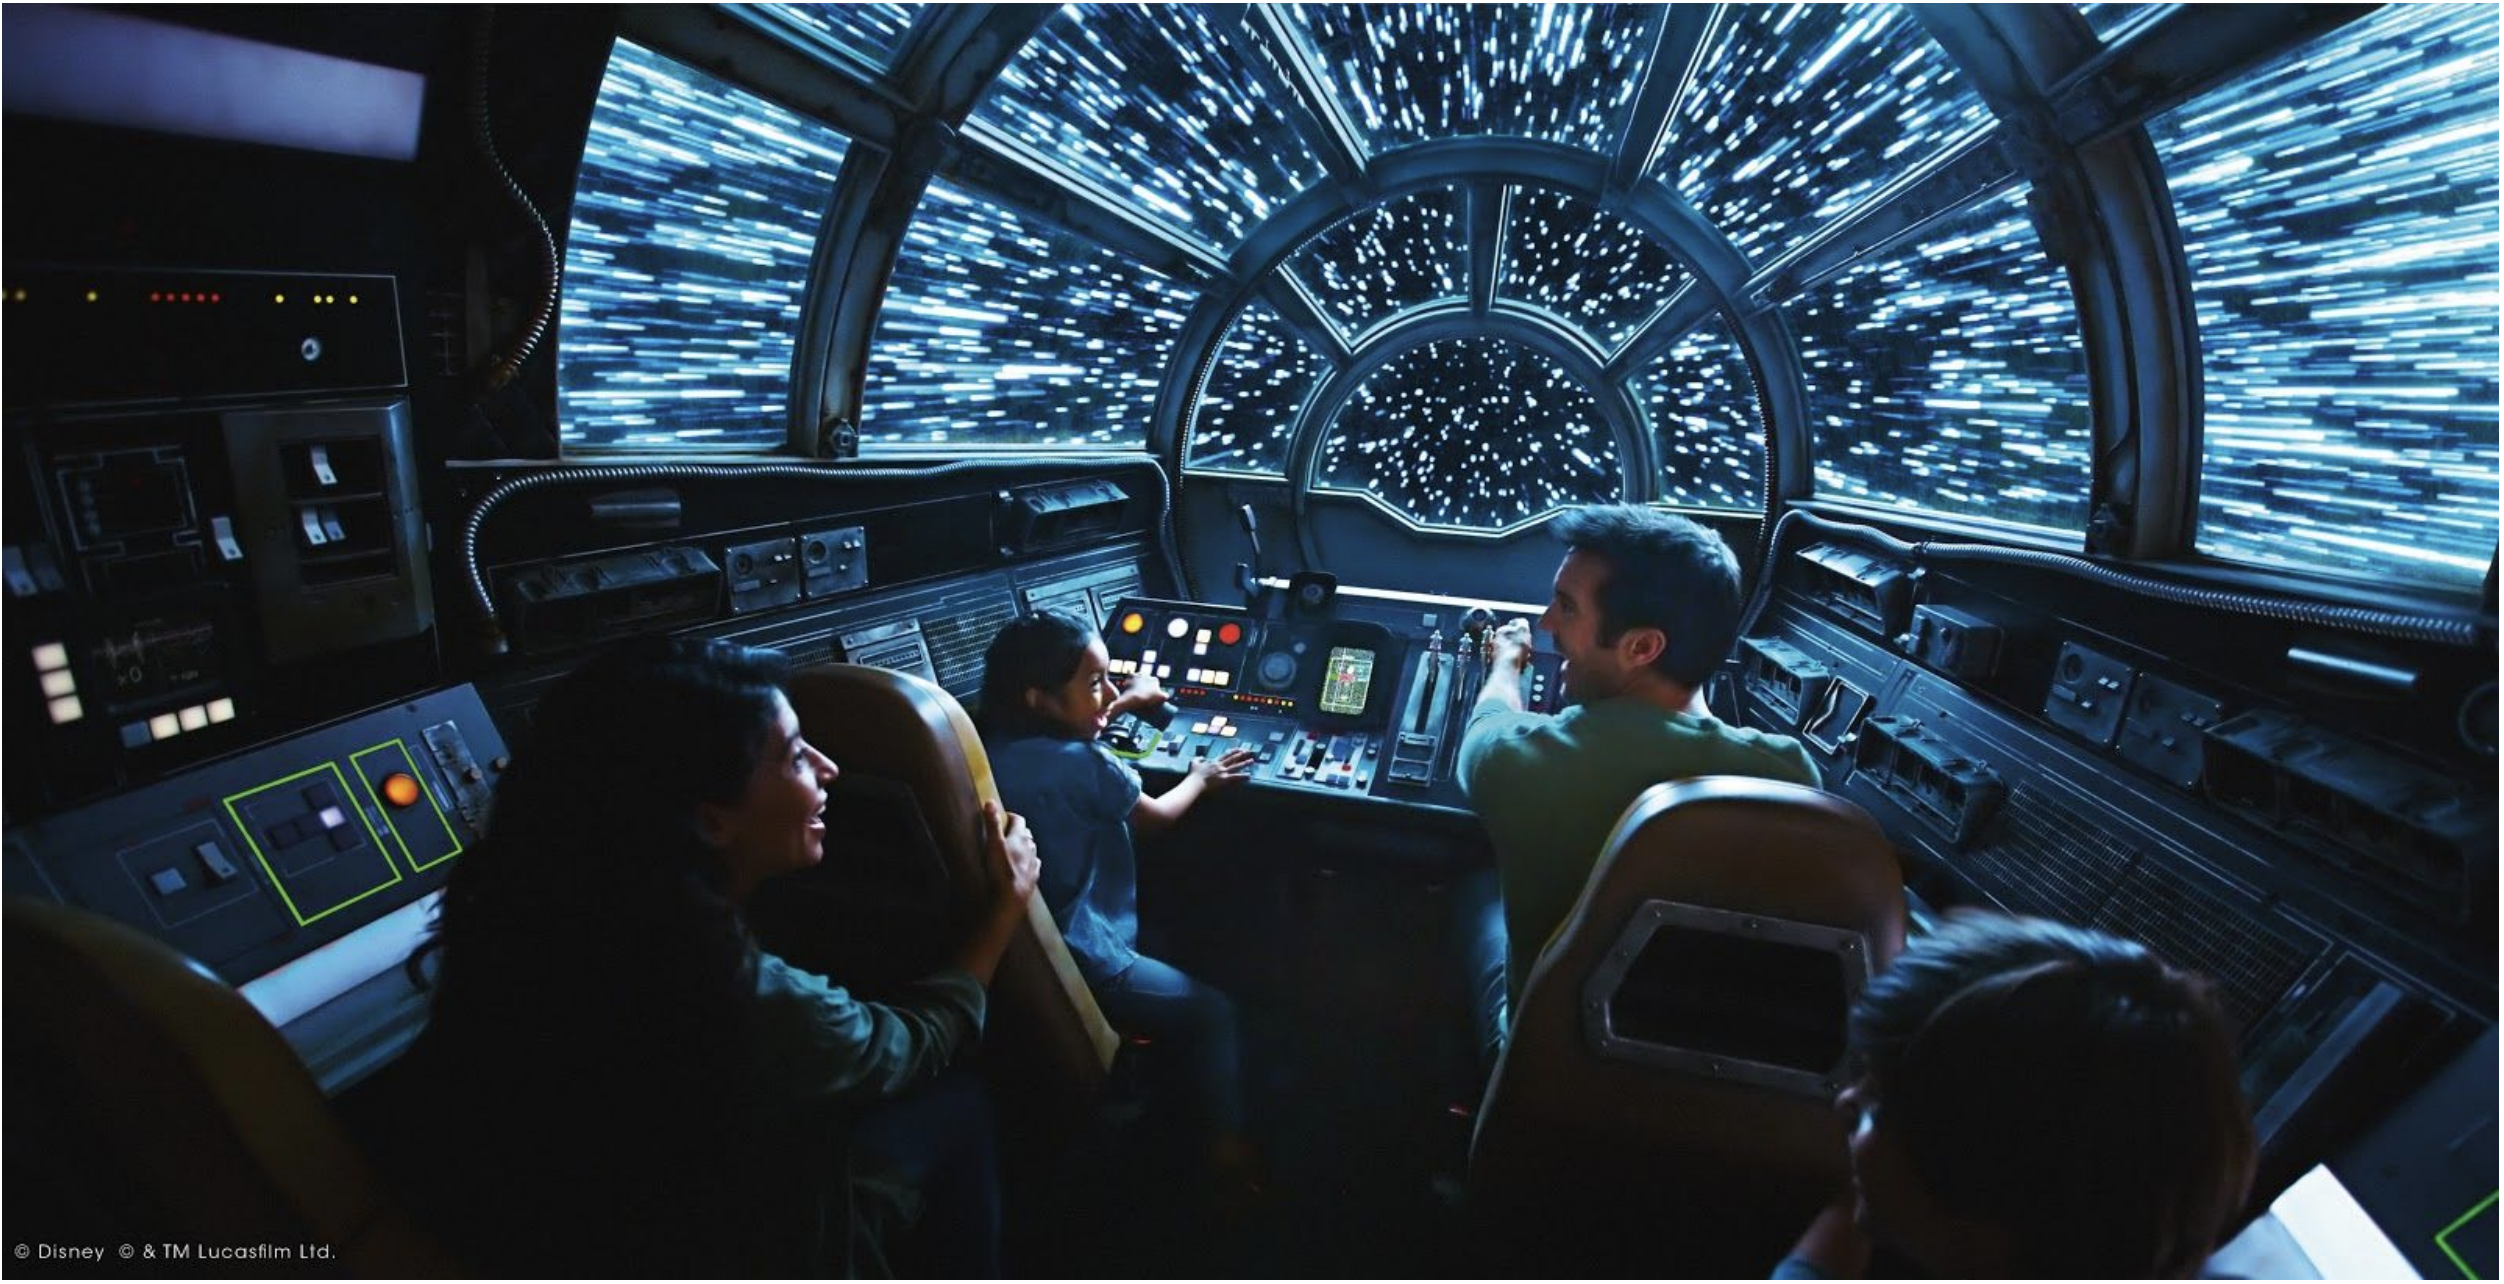 Four guests on simulated Millenium Falcon: Smugglers Run where they are seen to be zooming through space and stars with blue hue casted over the photo. Preview for Star Wars: Galaxy's Edge at Disney's Hollywood Studios.